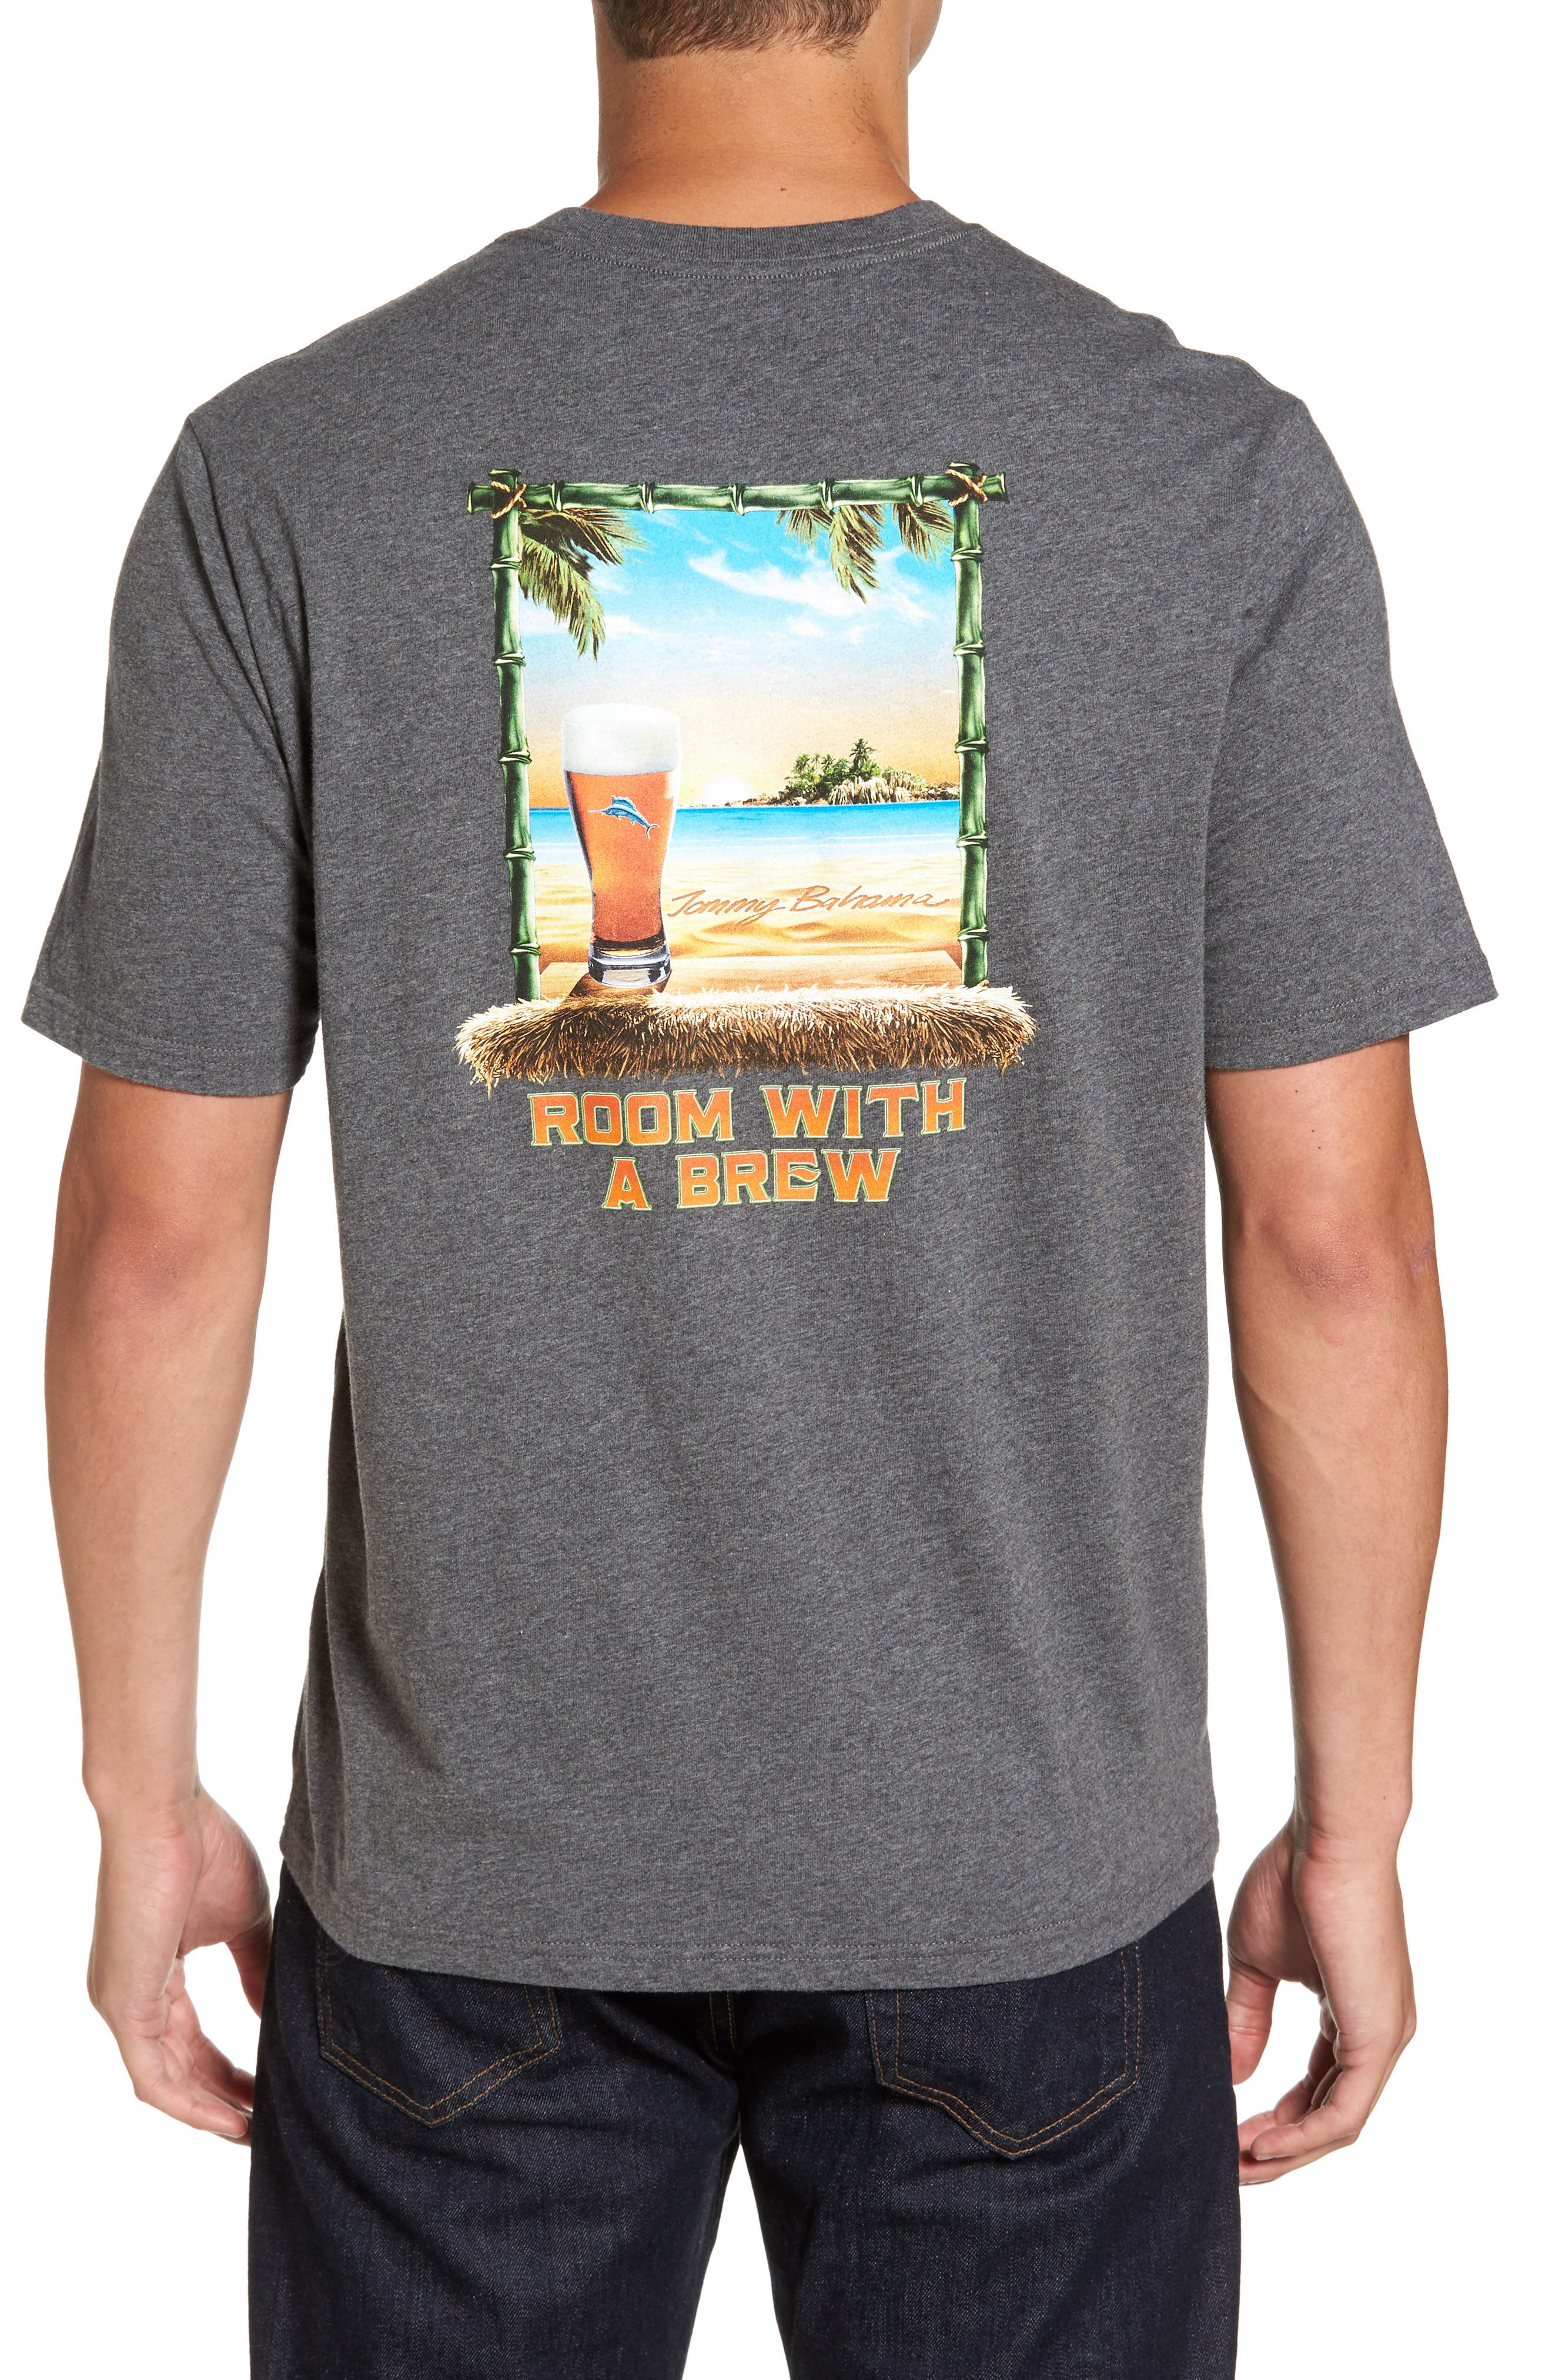 Tommy Bahama Room with a Brew Standard Fit T-Shirt